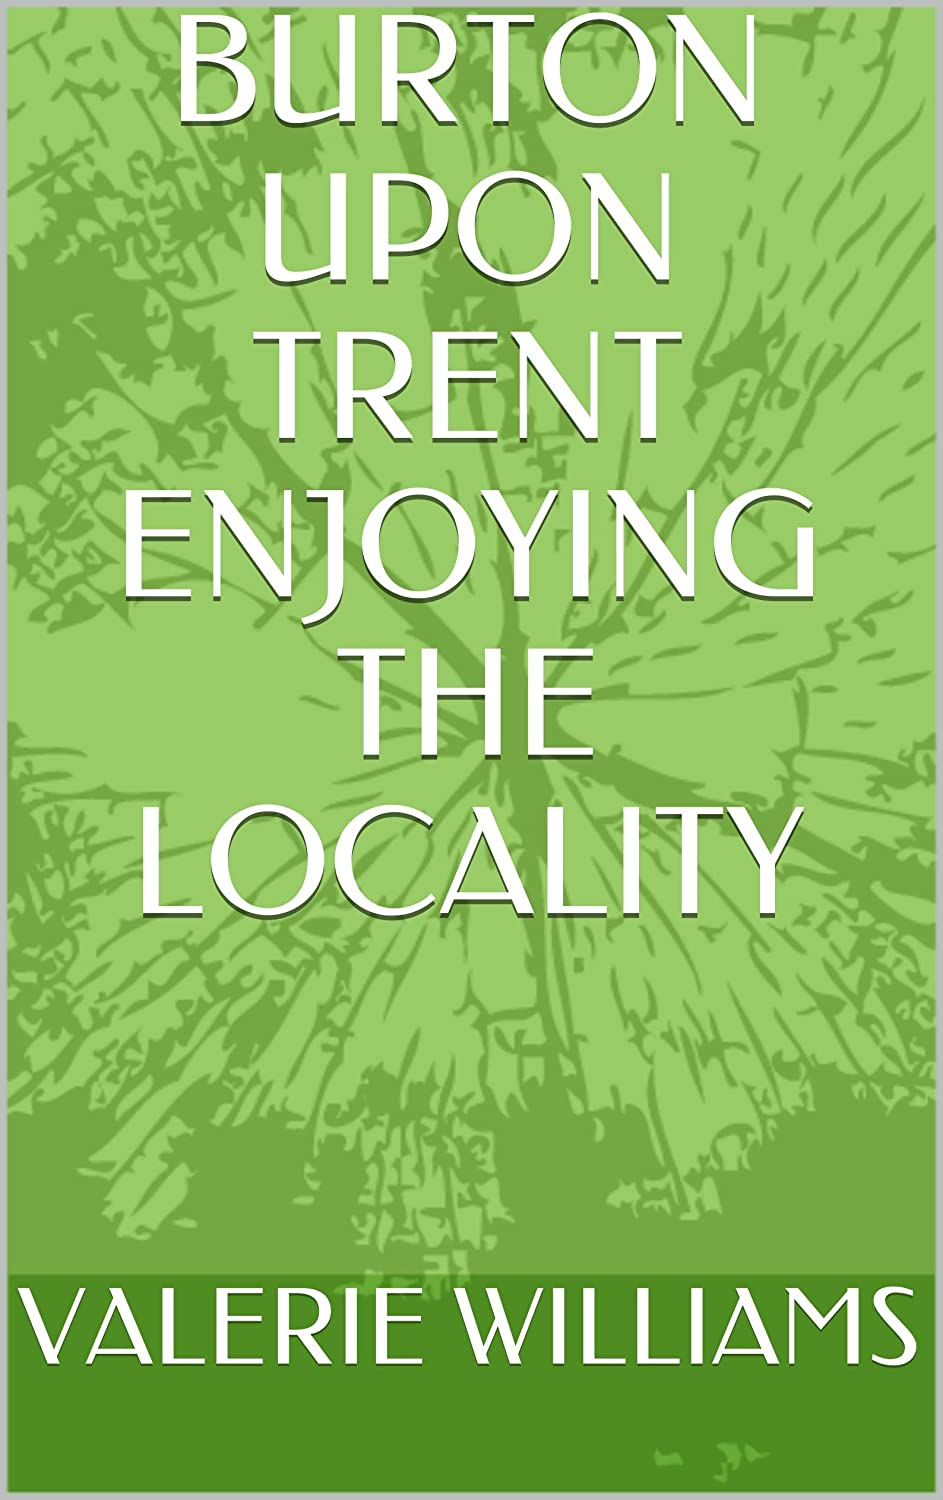 BURTON UPON TRENT ENJOYING THE LOCALITY (BURTON UPON TRENT TALES AND TRAILS Book 4)